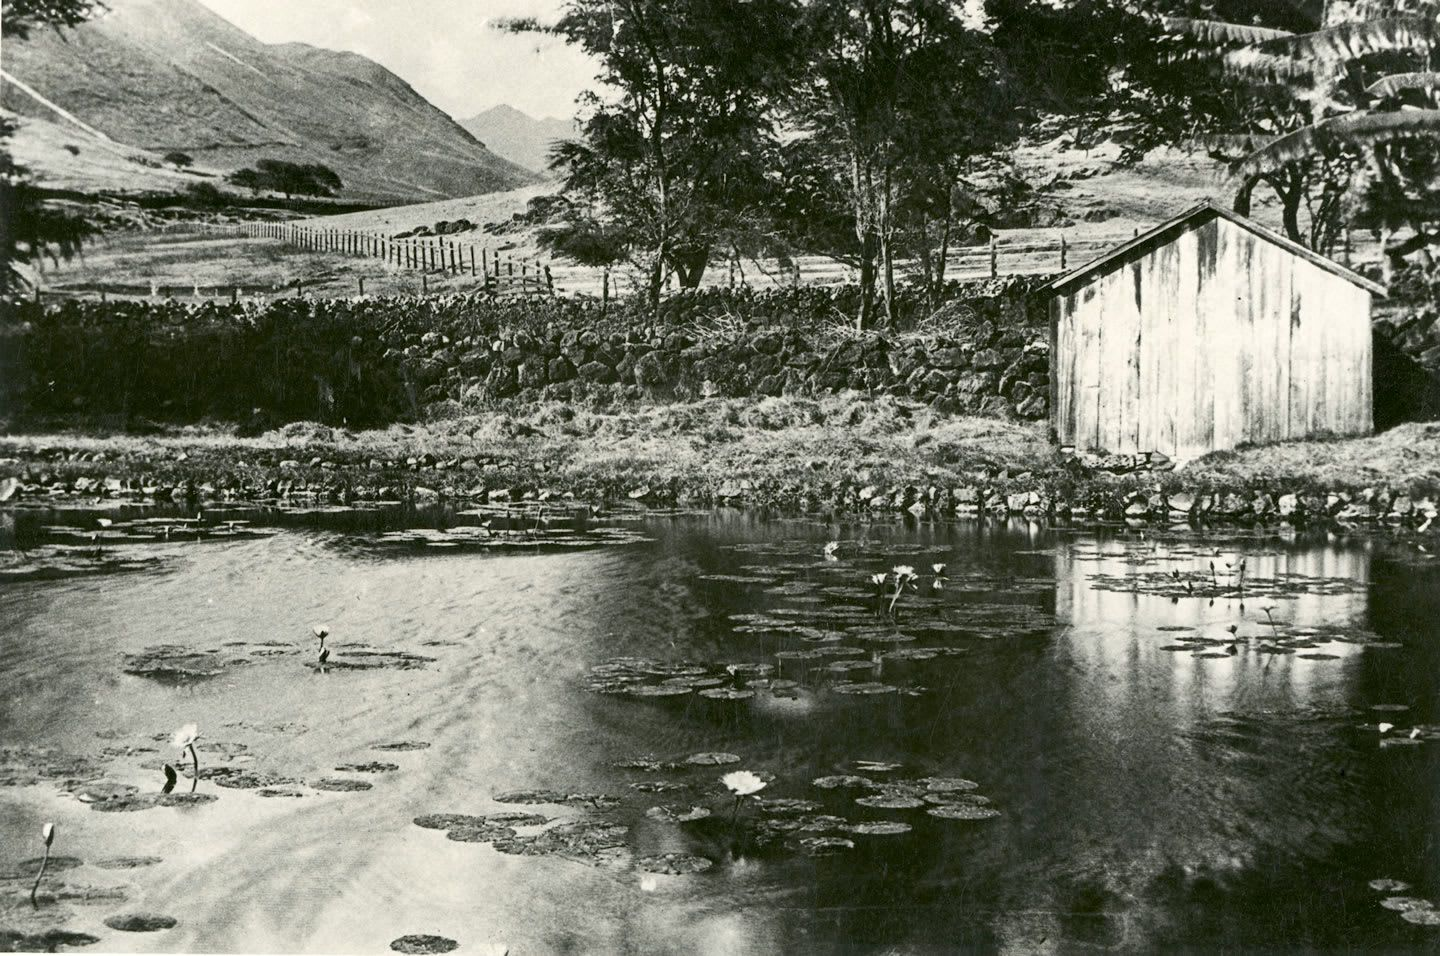 Punahou gets its name from the fresh water spring at the center of campus, Ka Punahou, which means the new spring. It is a symbol of enduring history as well as renewal.